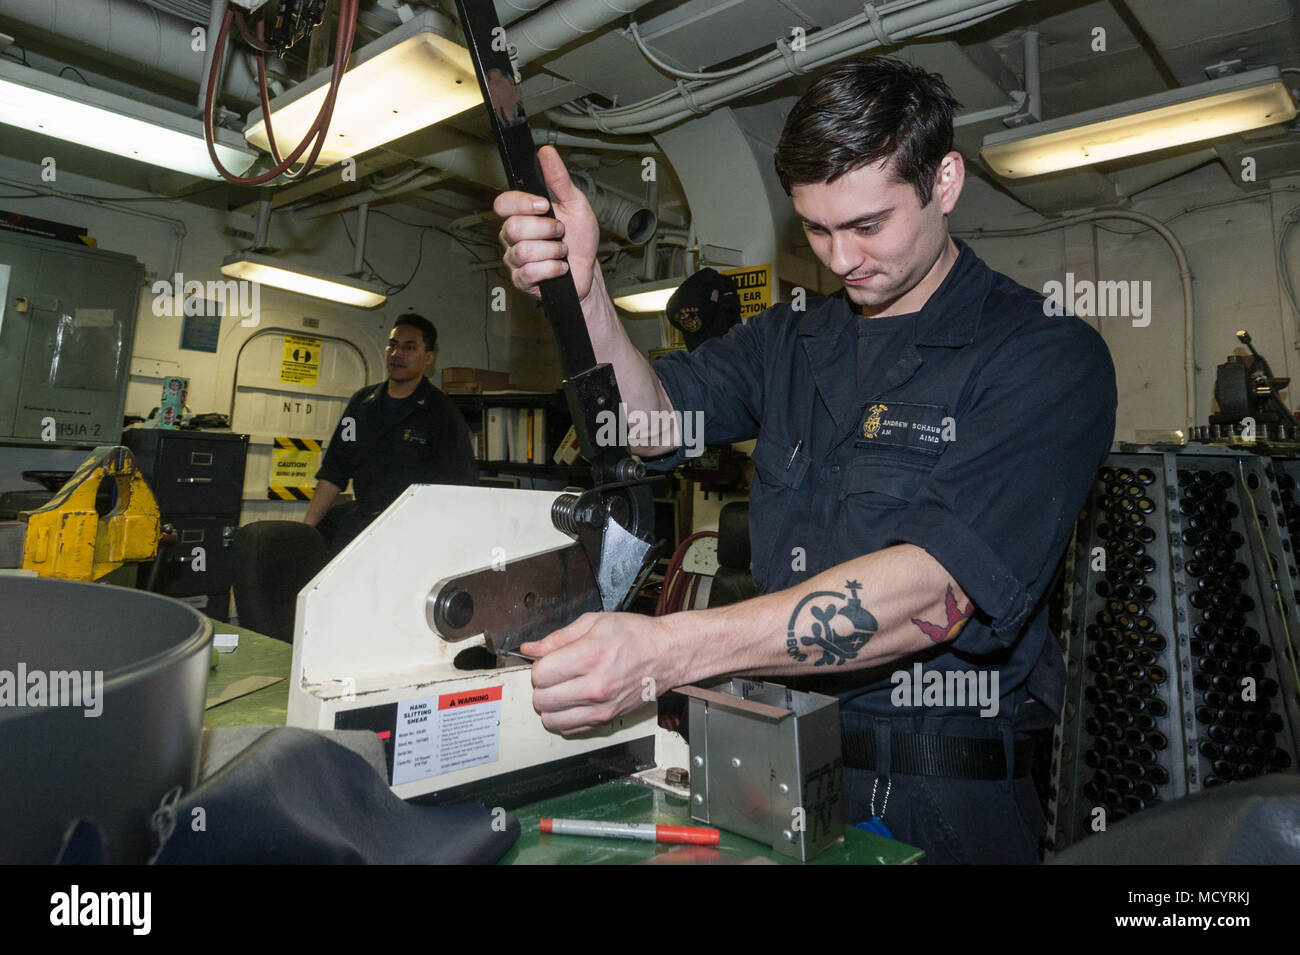 Aviation Structural Mechanic Airman Andrew Shaub, from Massillon, Ohio, uses a hand slitting shear to cut aluminum aboard the amphibious assault ship USS Wasp (LHD 1). The Wasp Expeditionary Strike Group is conducting a regional patrol meant to strengthen regional alliances, provide rapid-response capability, and advance the Up-Gunned ESG concept. (U.S. Navy photo by Mass Communication Specialist 2nd Class Desmond Parks/released). - Stock Image